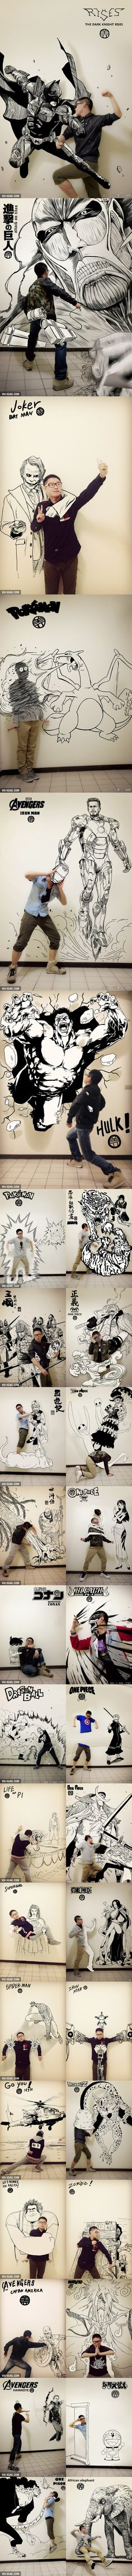 Epic Asian Guy Draws Himself with Anime, manga, and comic Book Characters!—This is so cool! I especially love the hollow mask and Sai ones!